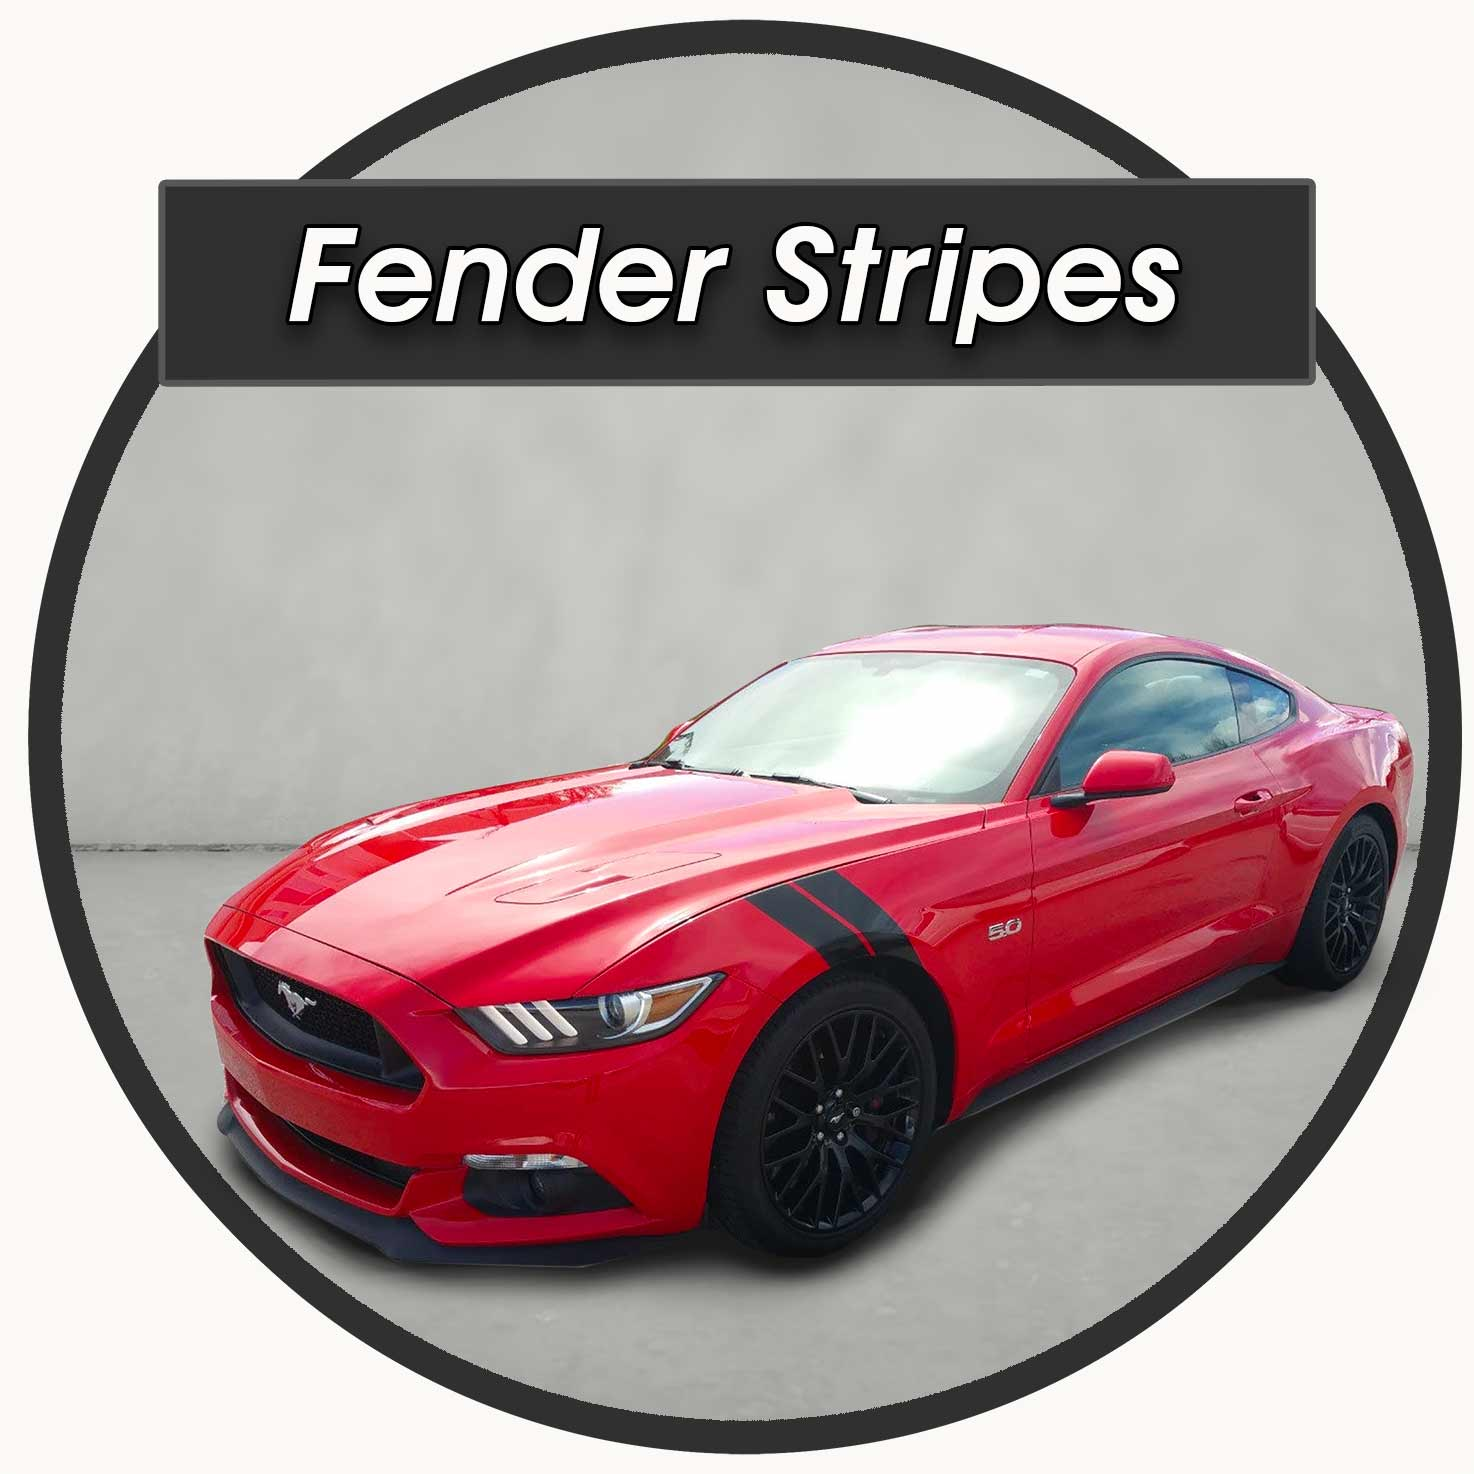 Fender Stripes Shark Gill style decal for a Ford Mustang for sale